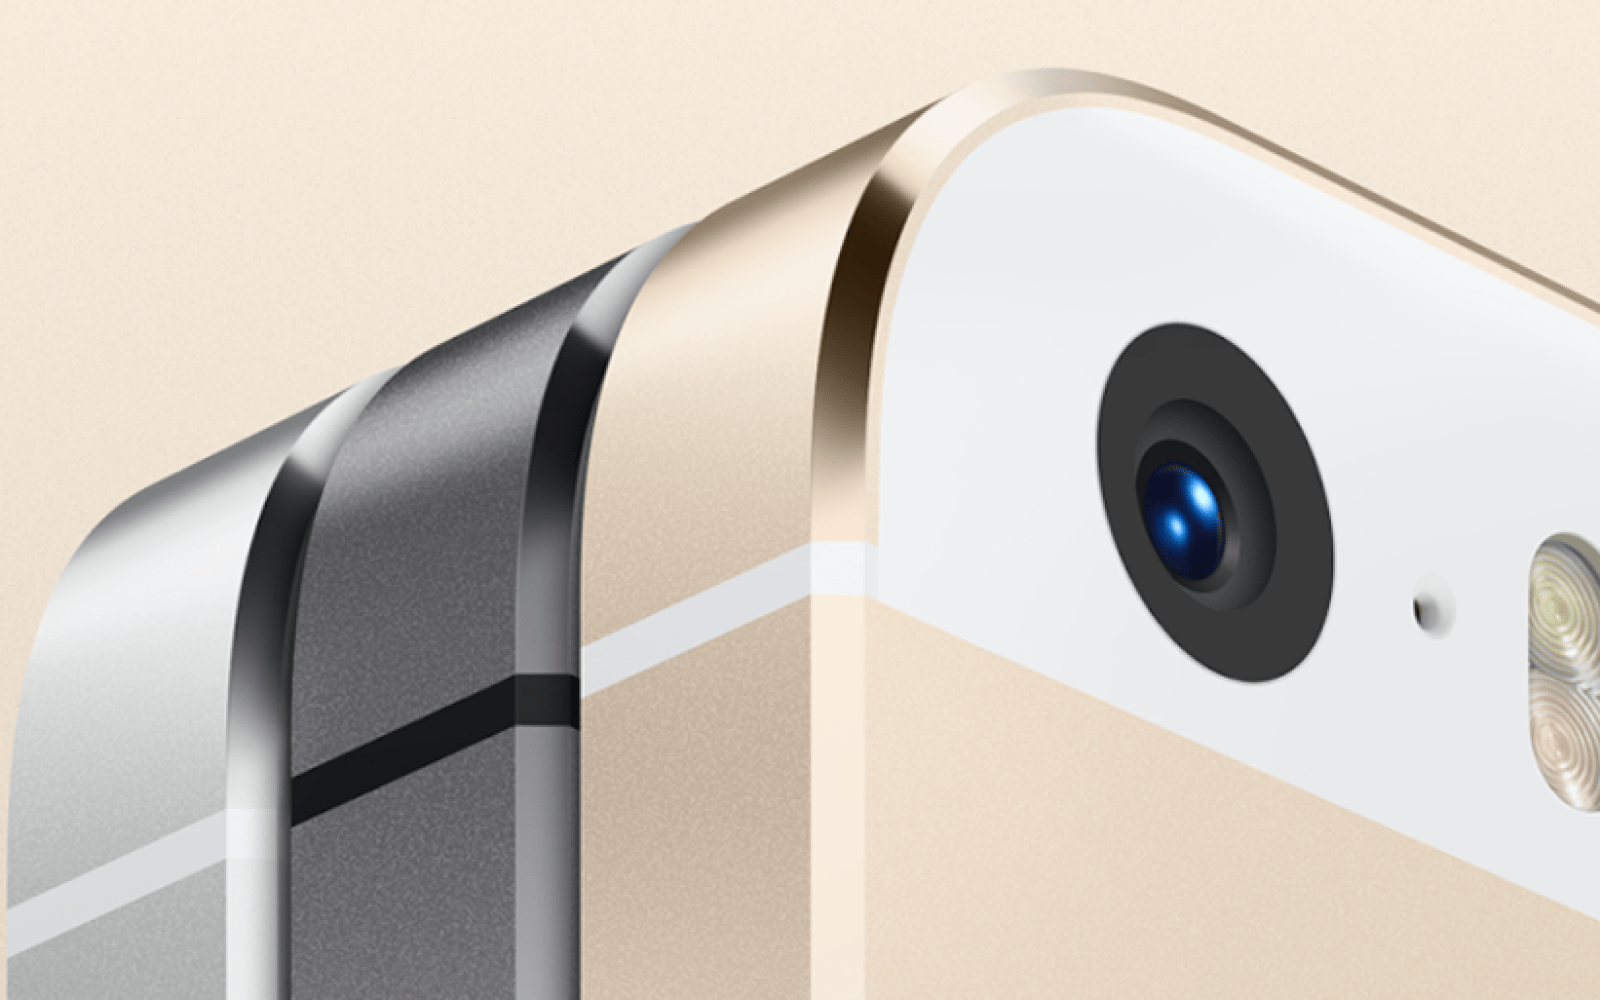 KGI: New 4-inch iPhone will resemble iPhone 5s, expect A9 chip and NFC for Apple Pay